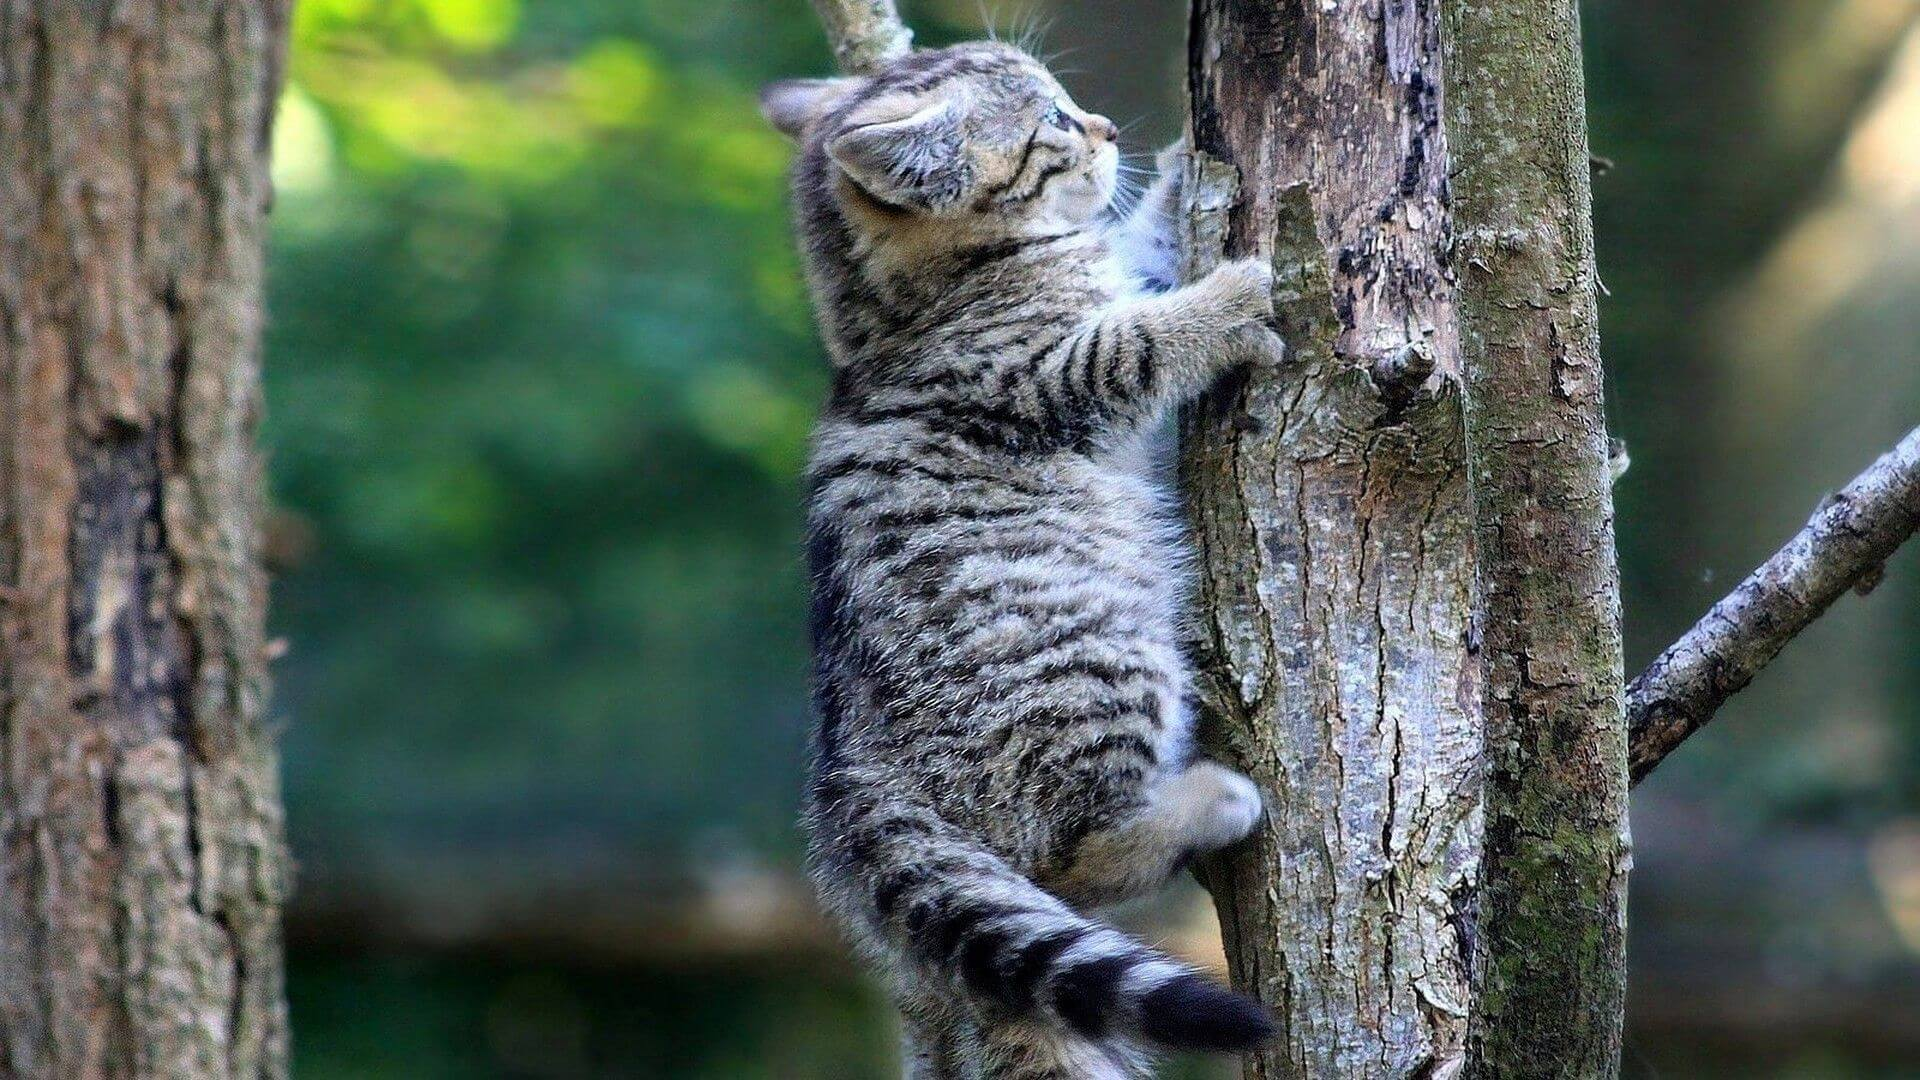 How To Rescue A Cat From A Tall Tree?